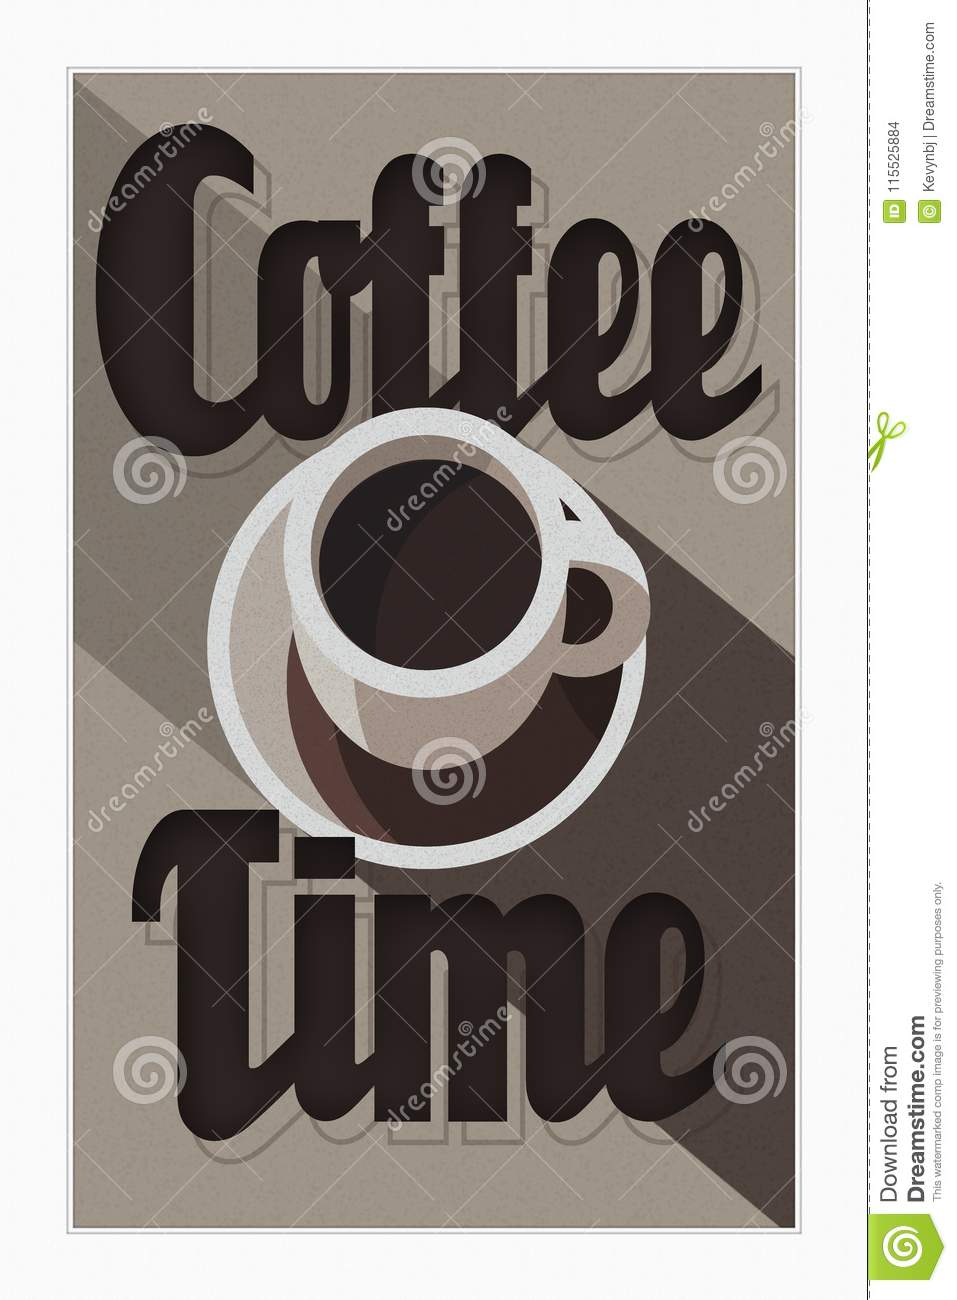 Affiche Deco Cuisine Affiche Art Deco De Temps De Café Illustration Stock